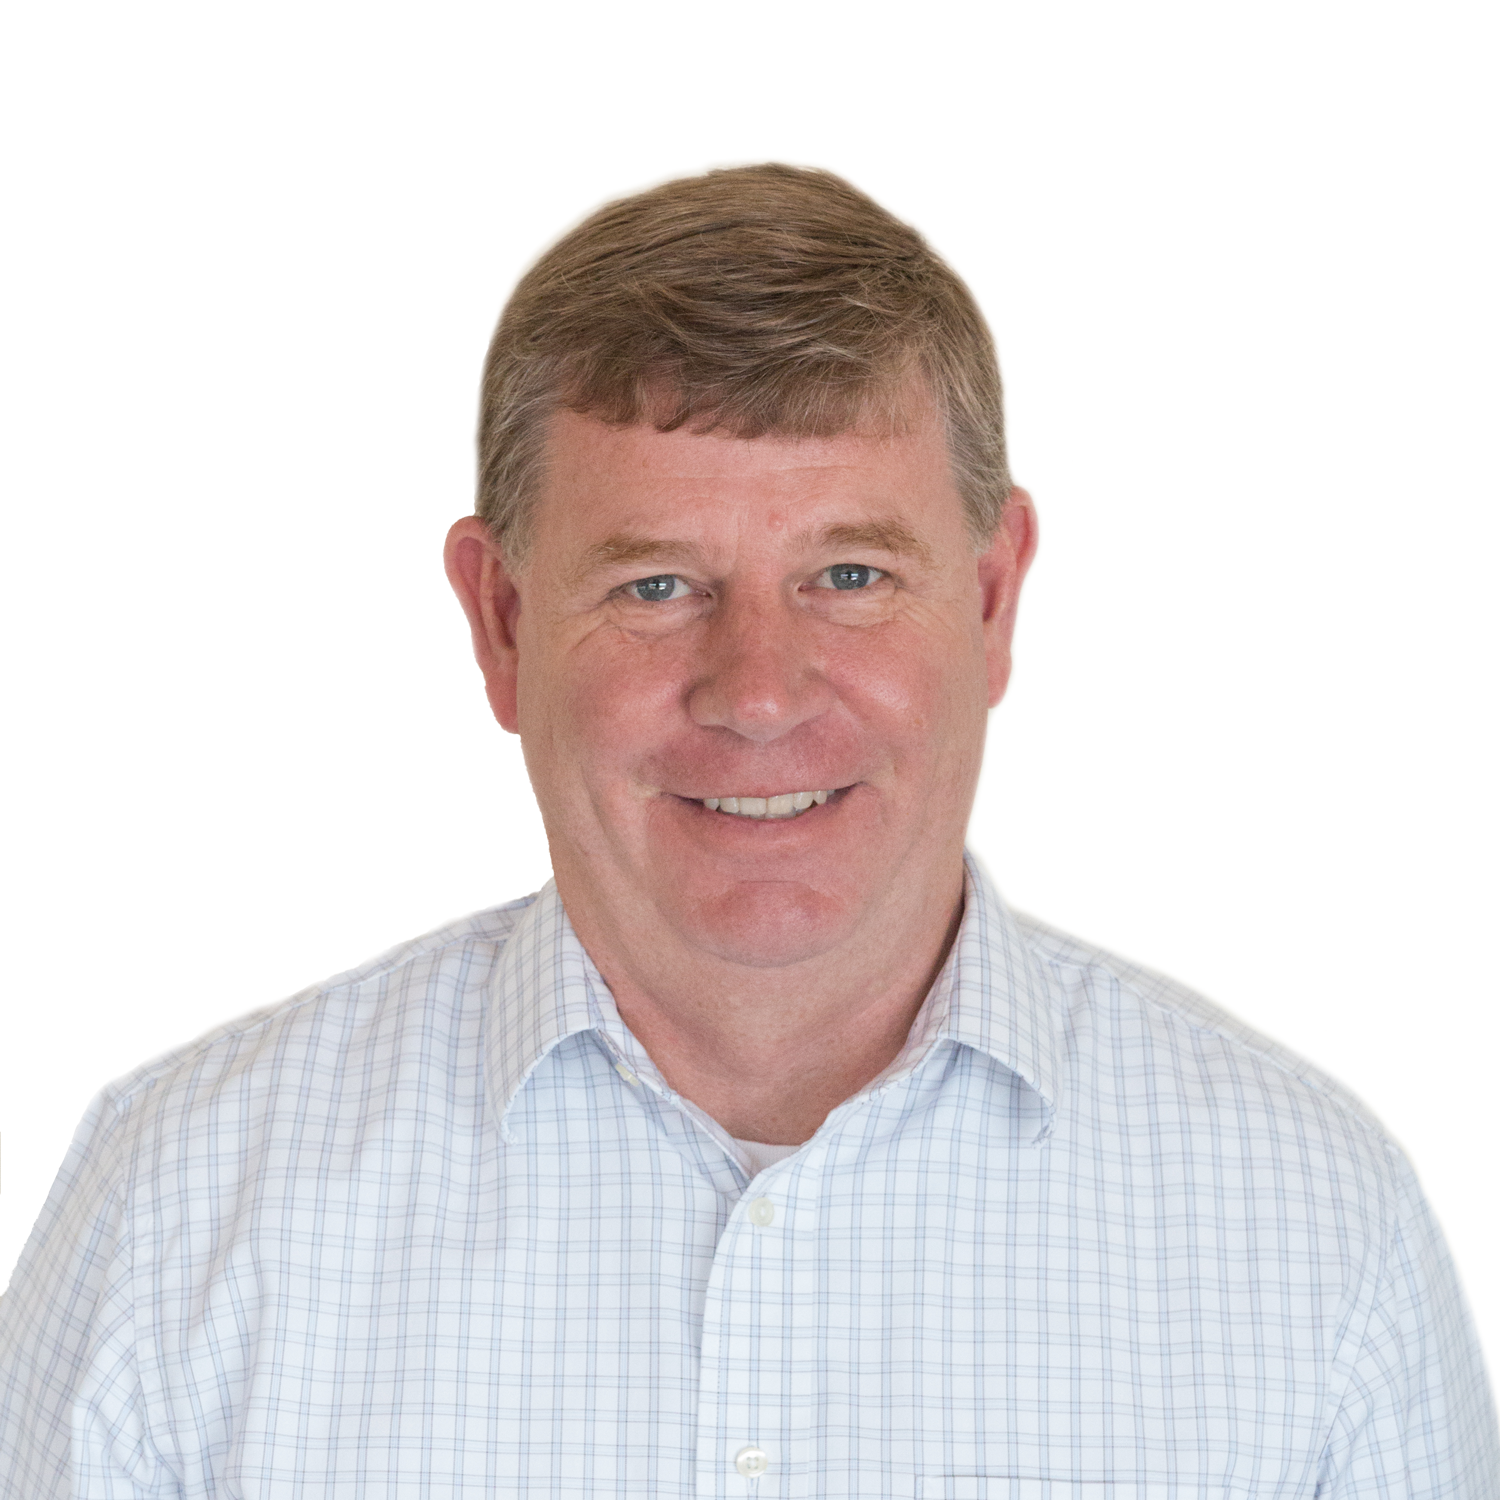 August Schell Welcomes New COO